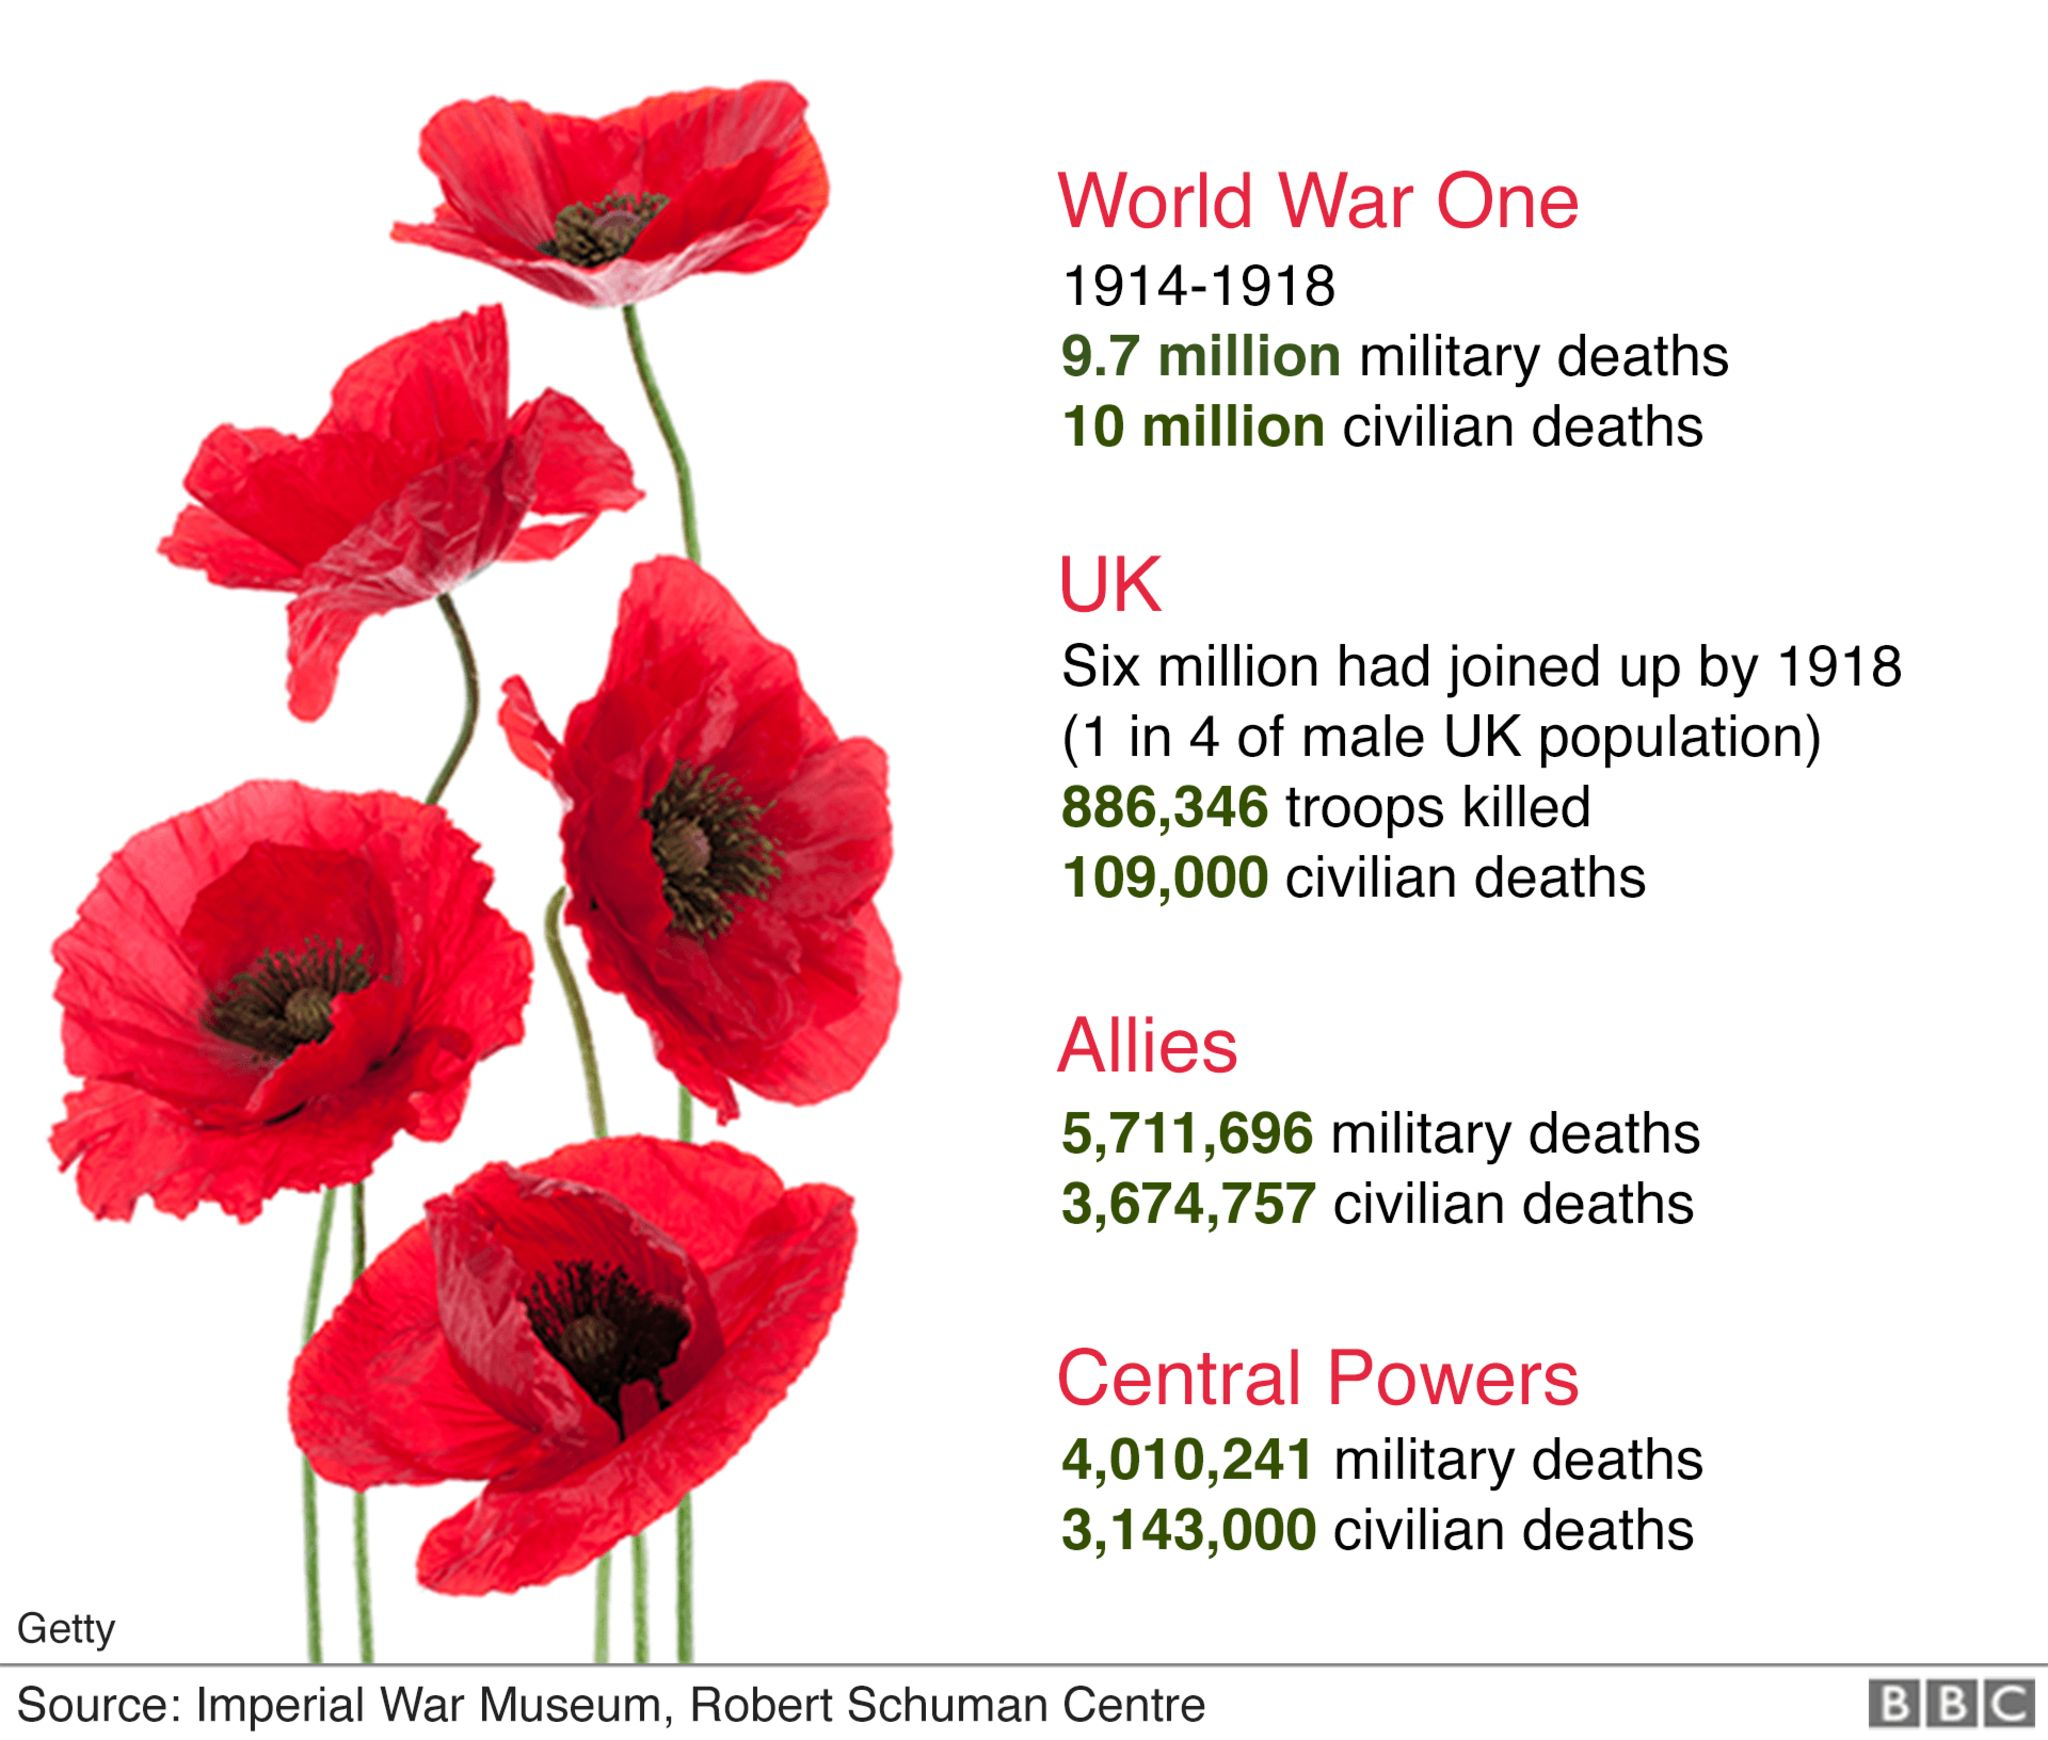 WW1 in numbers